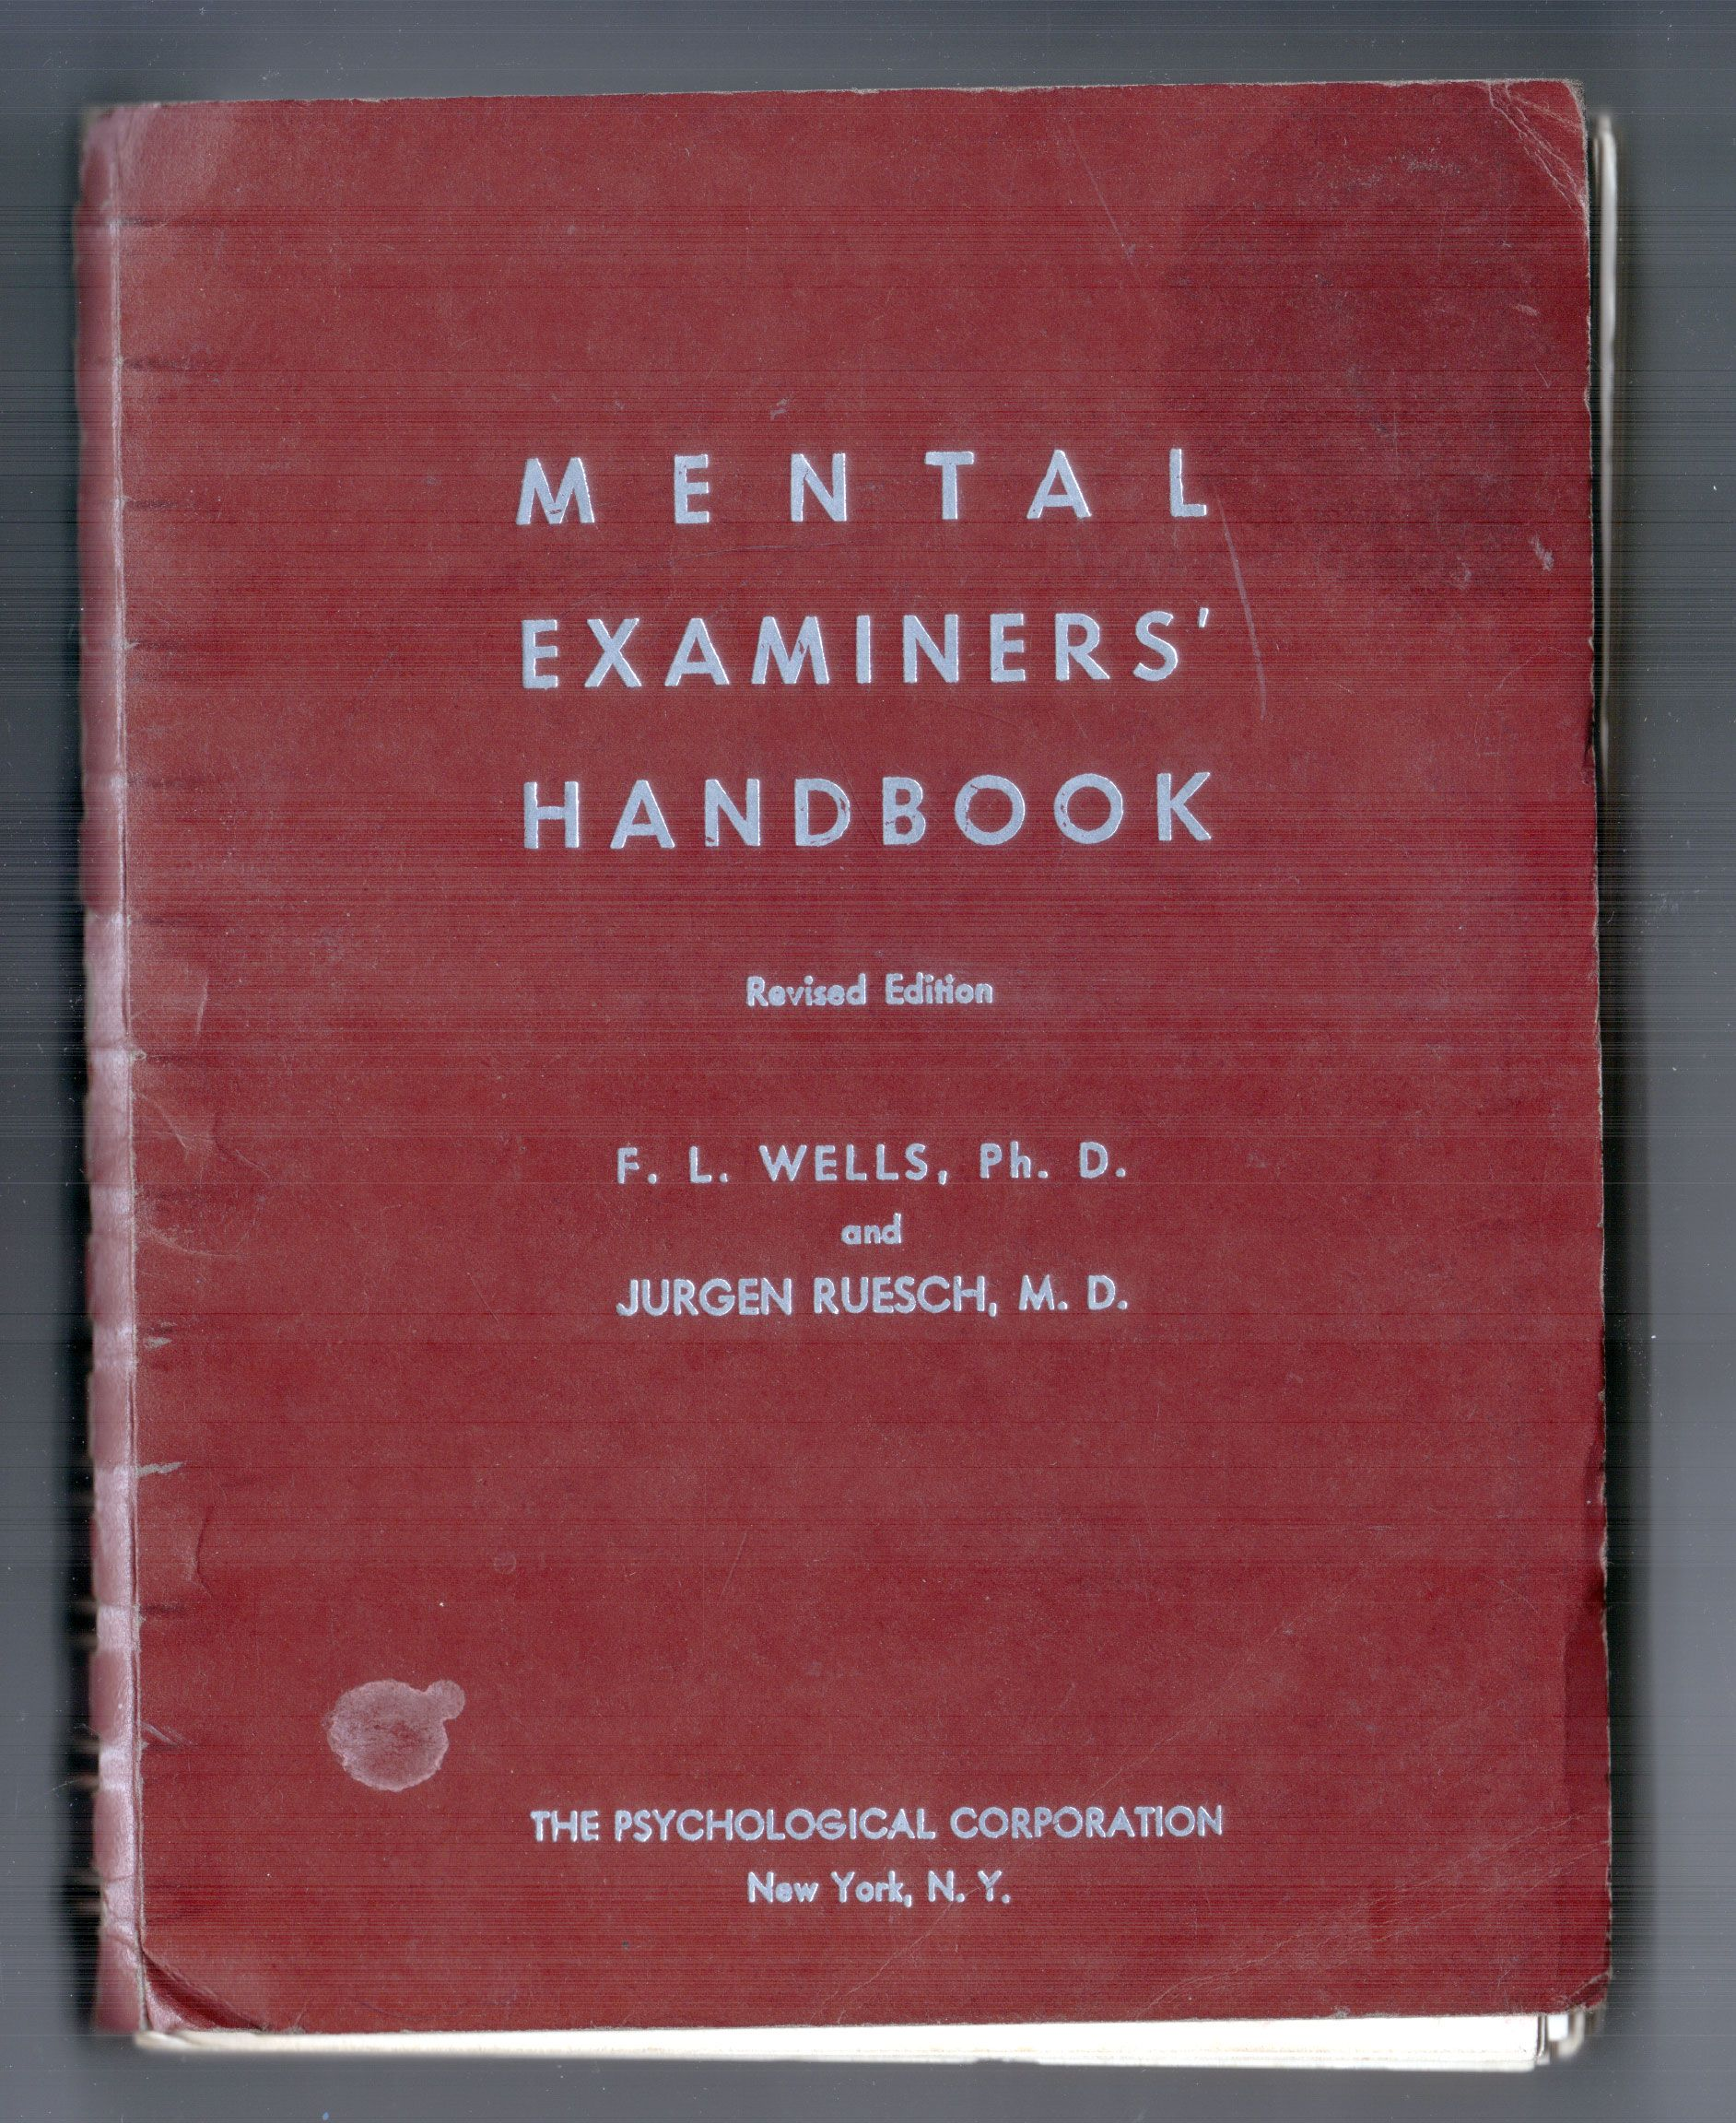 Mental Examiners Handbook Published By The